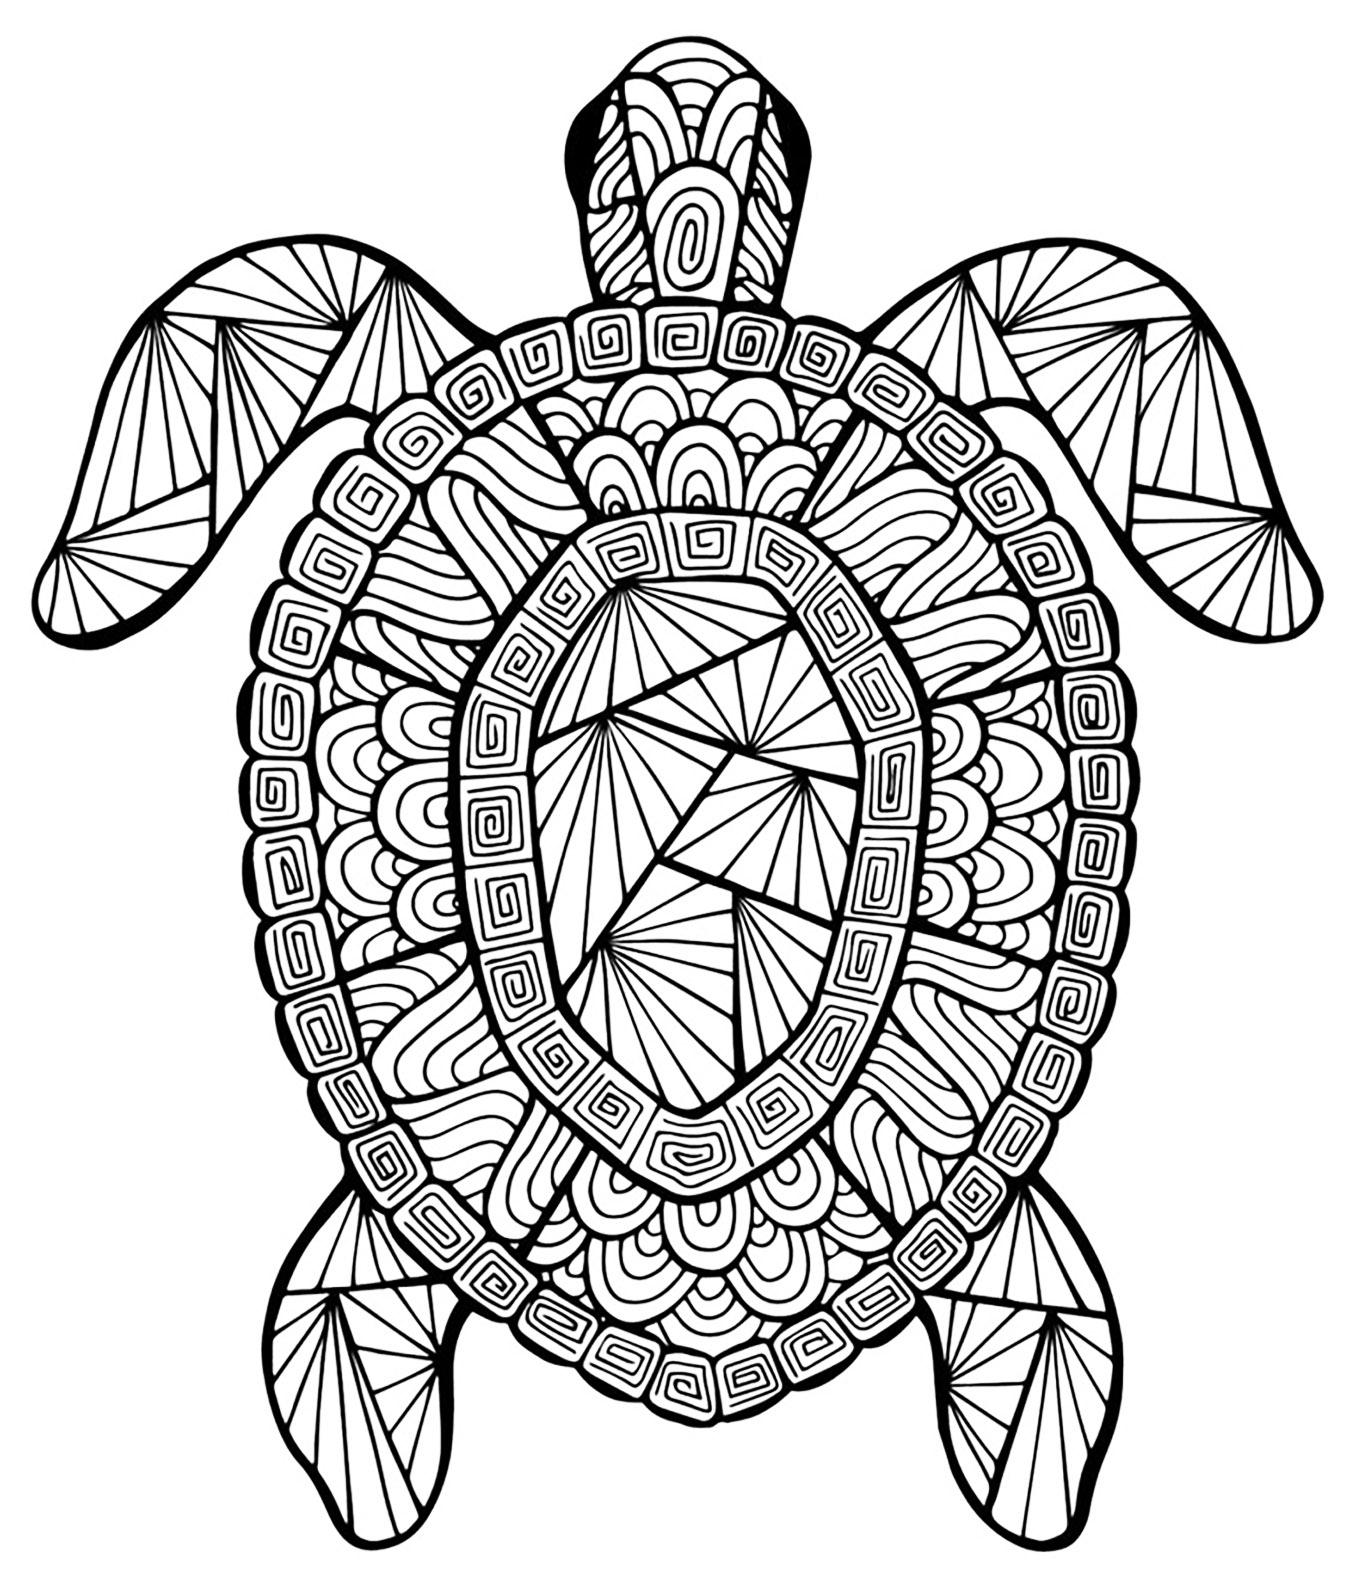 coloring animal pictures to colour animal coloring pages for adults best coloring pages for pictures colour animal to coloring